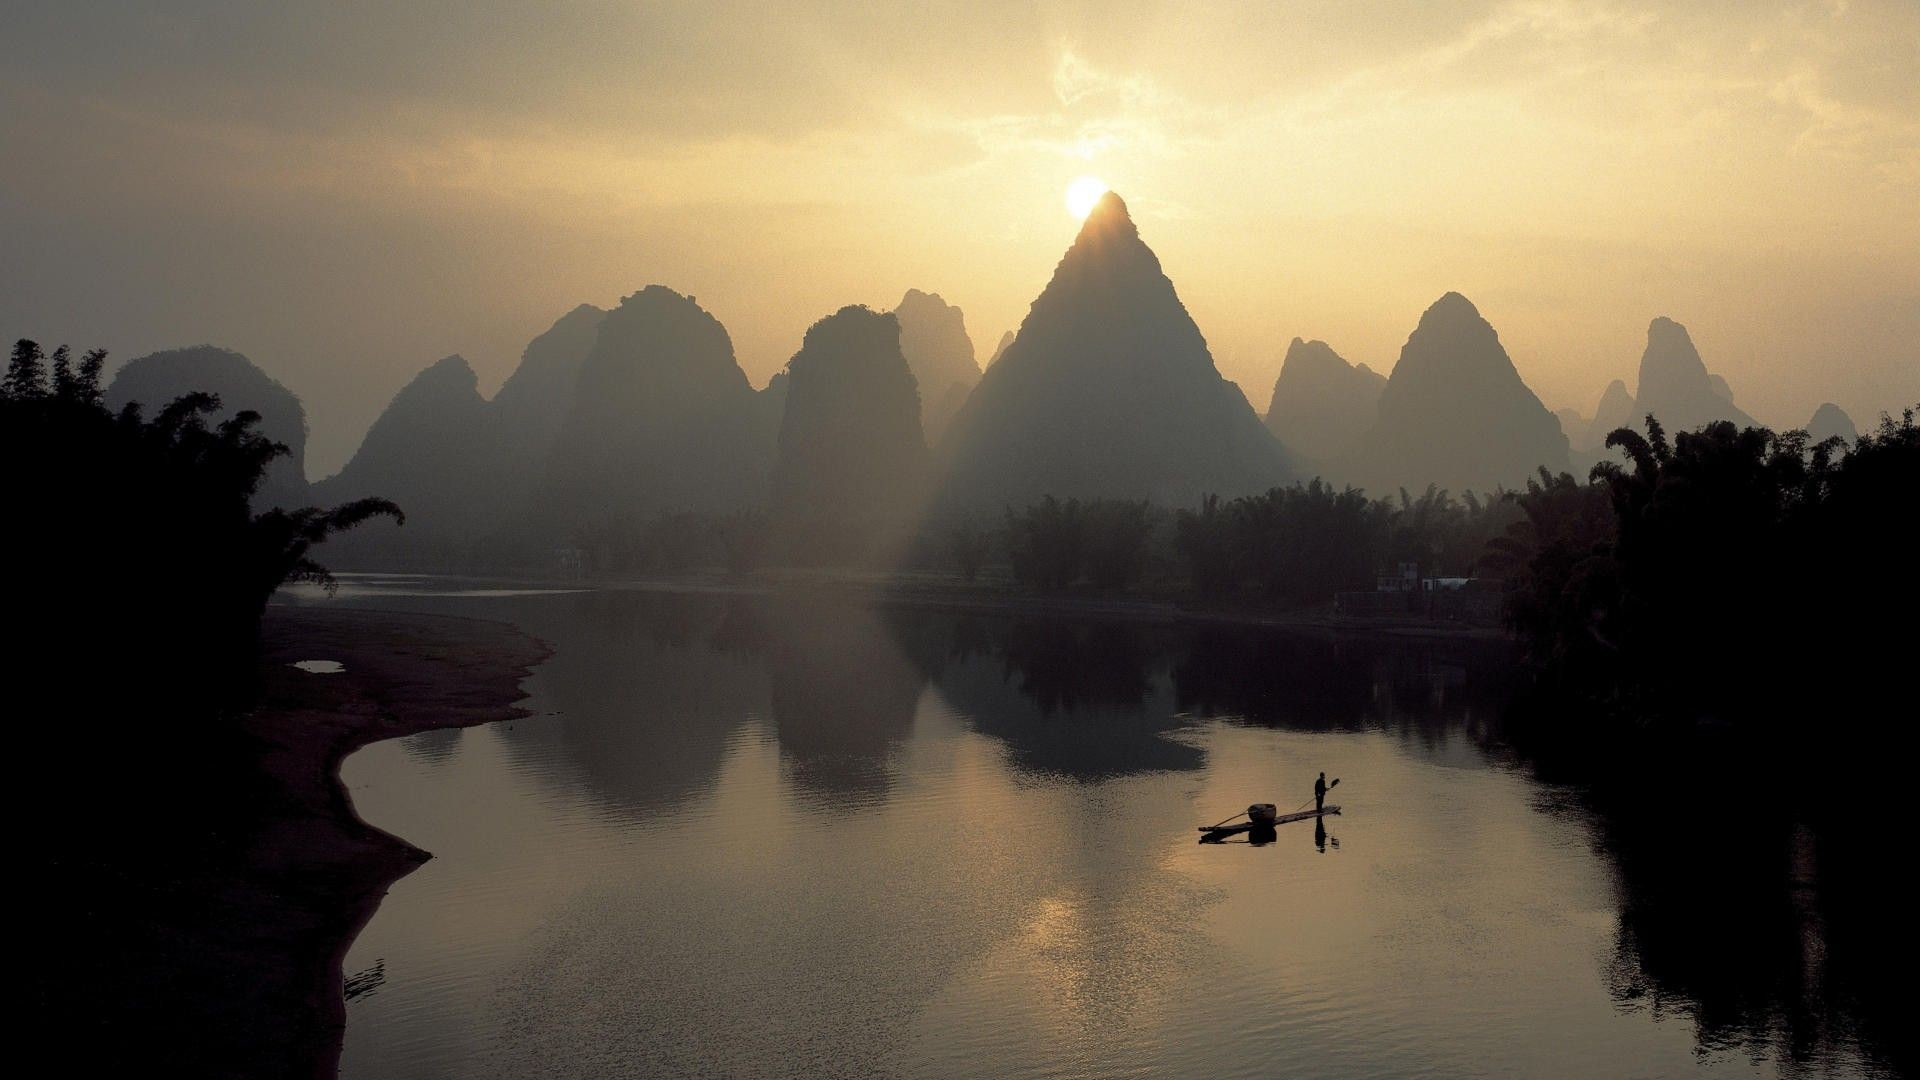 Res: 1920x1080, High Quality Chinese Landscape Wallpaper » Full HD Images